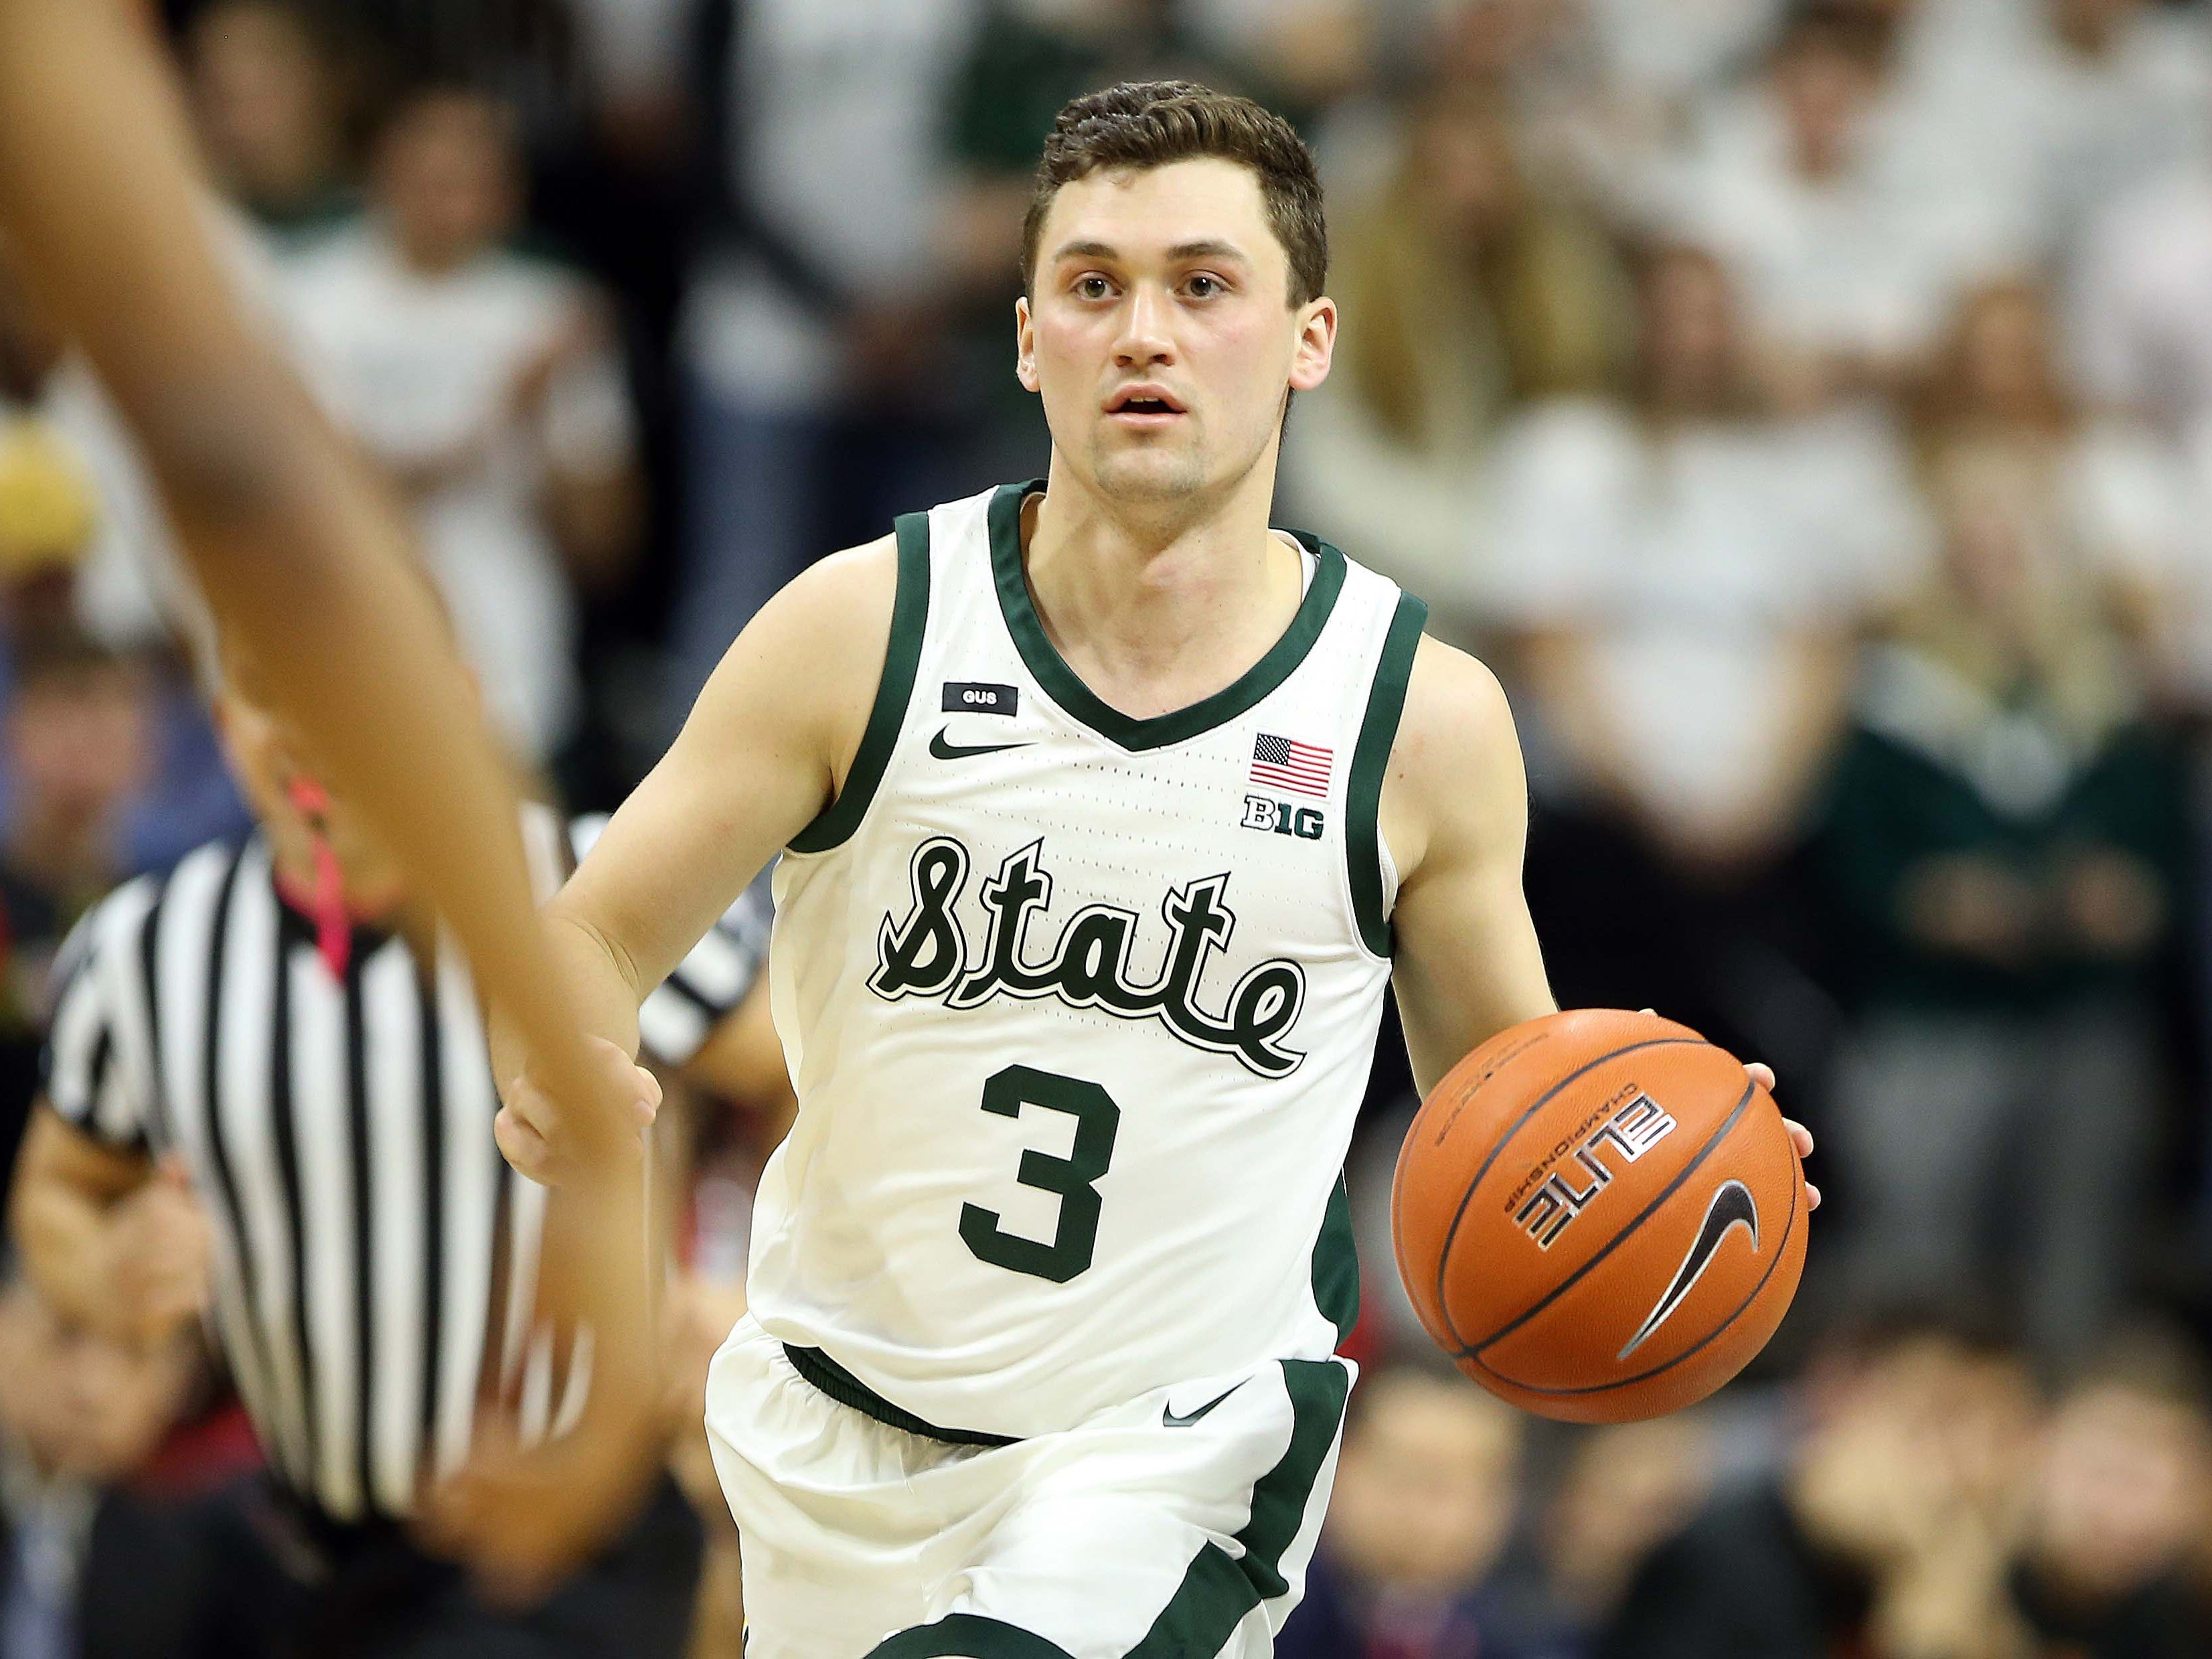 Michigan State Spartans guard Foster Loyer (3) brings the ball up court during the second half of a game against the Maryland Terrapins at the Breslin Center.